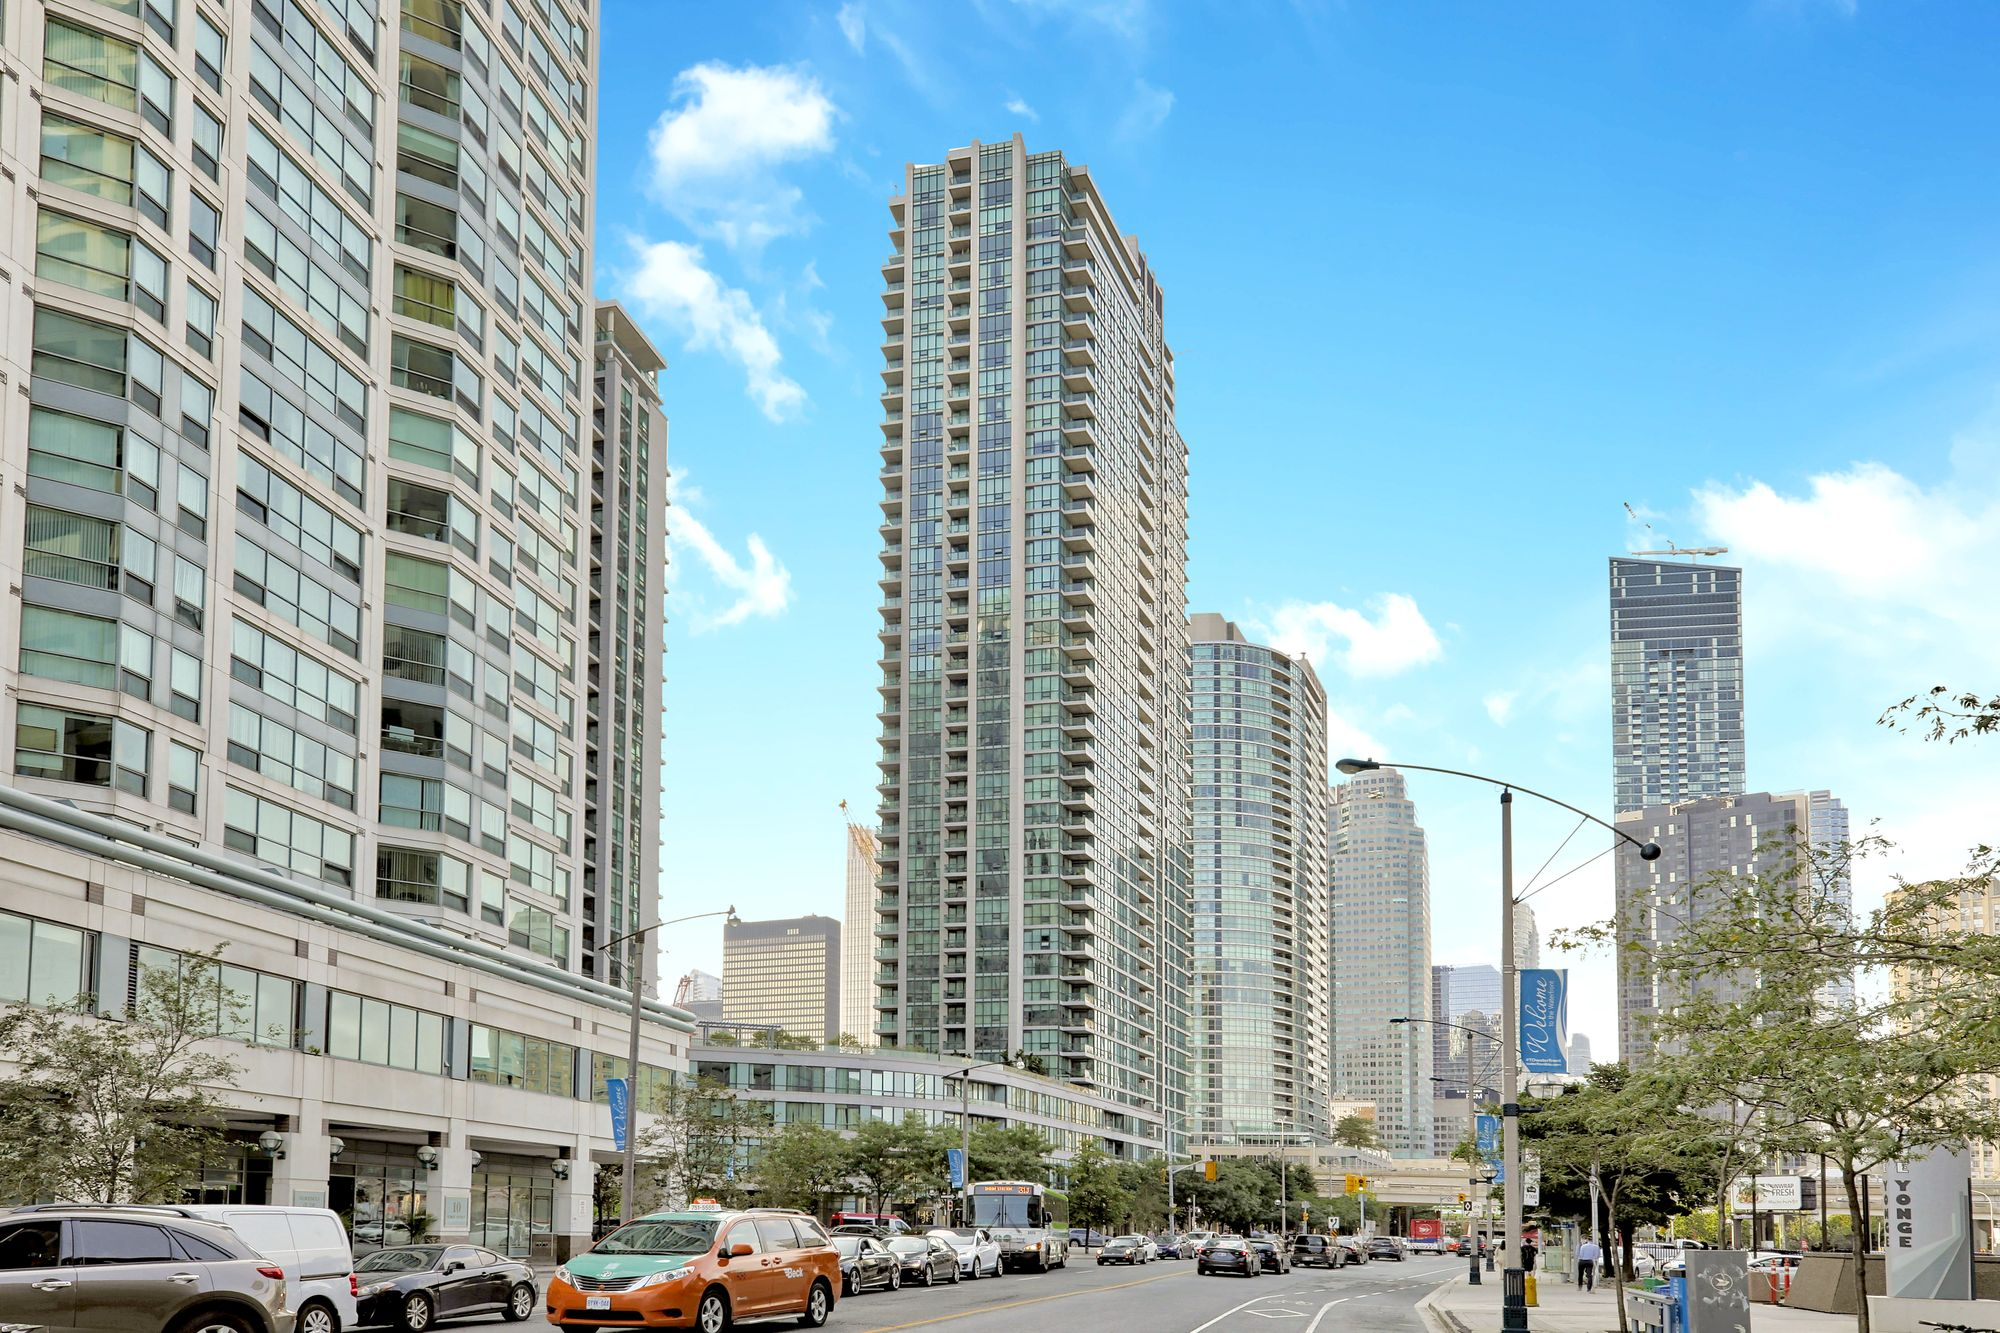 Pinnacle Centre I Condos at 12 Yonge St. This condo is located in  Downtown, Toronto - image #1 of 6 by Strata.ca